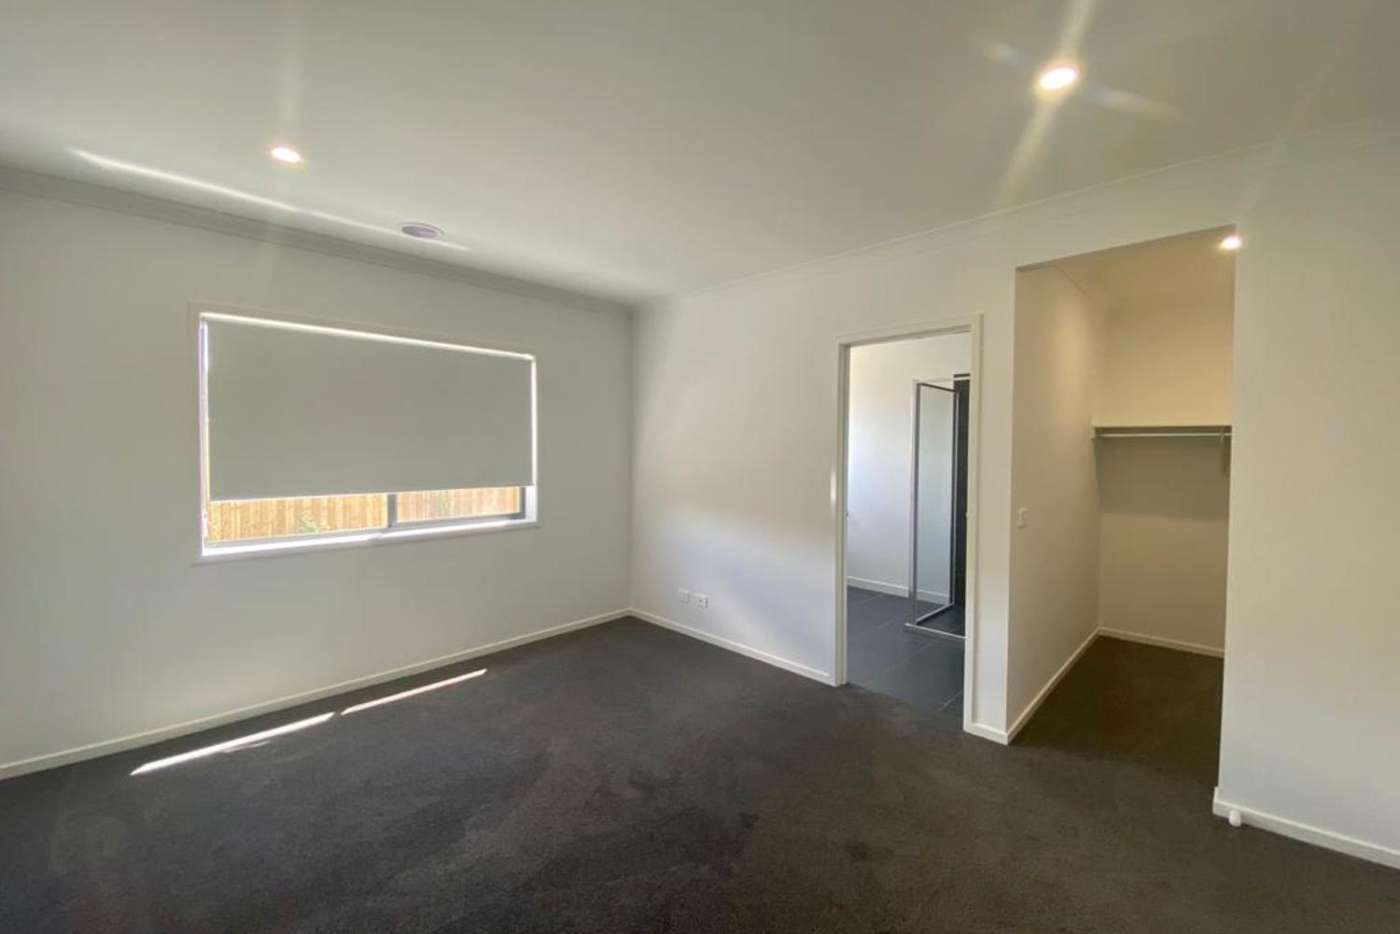 Sixth view of Homely house listing, 7 Dajarra Avenue, Wyndham Vale VIC 3024